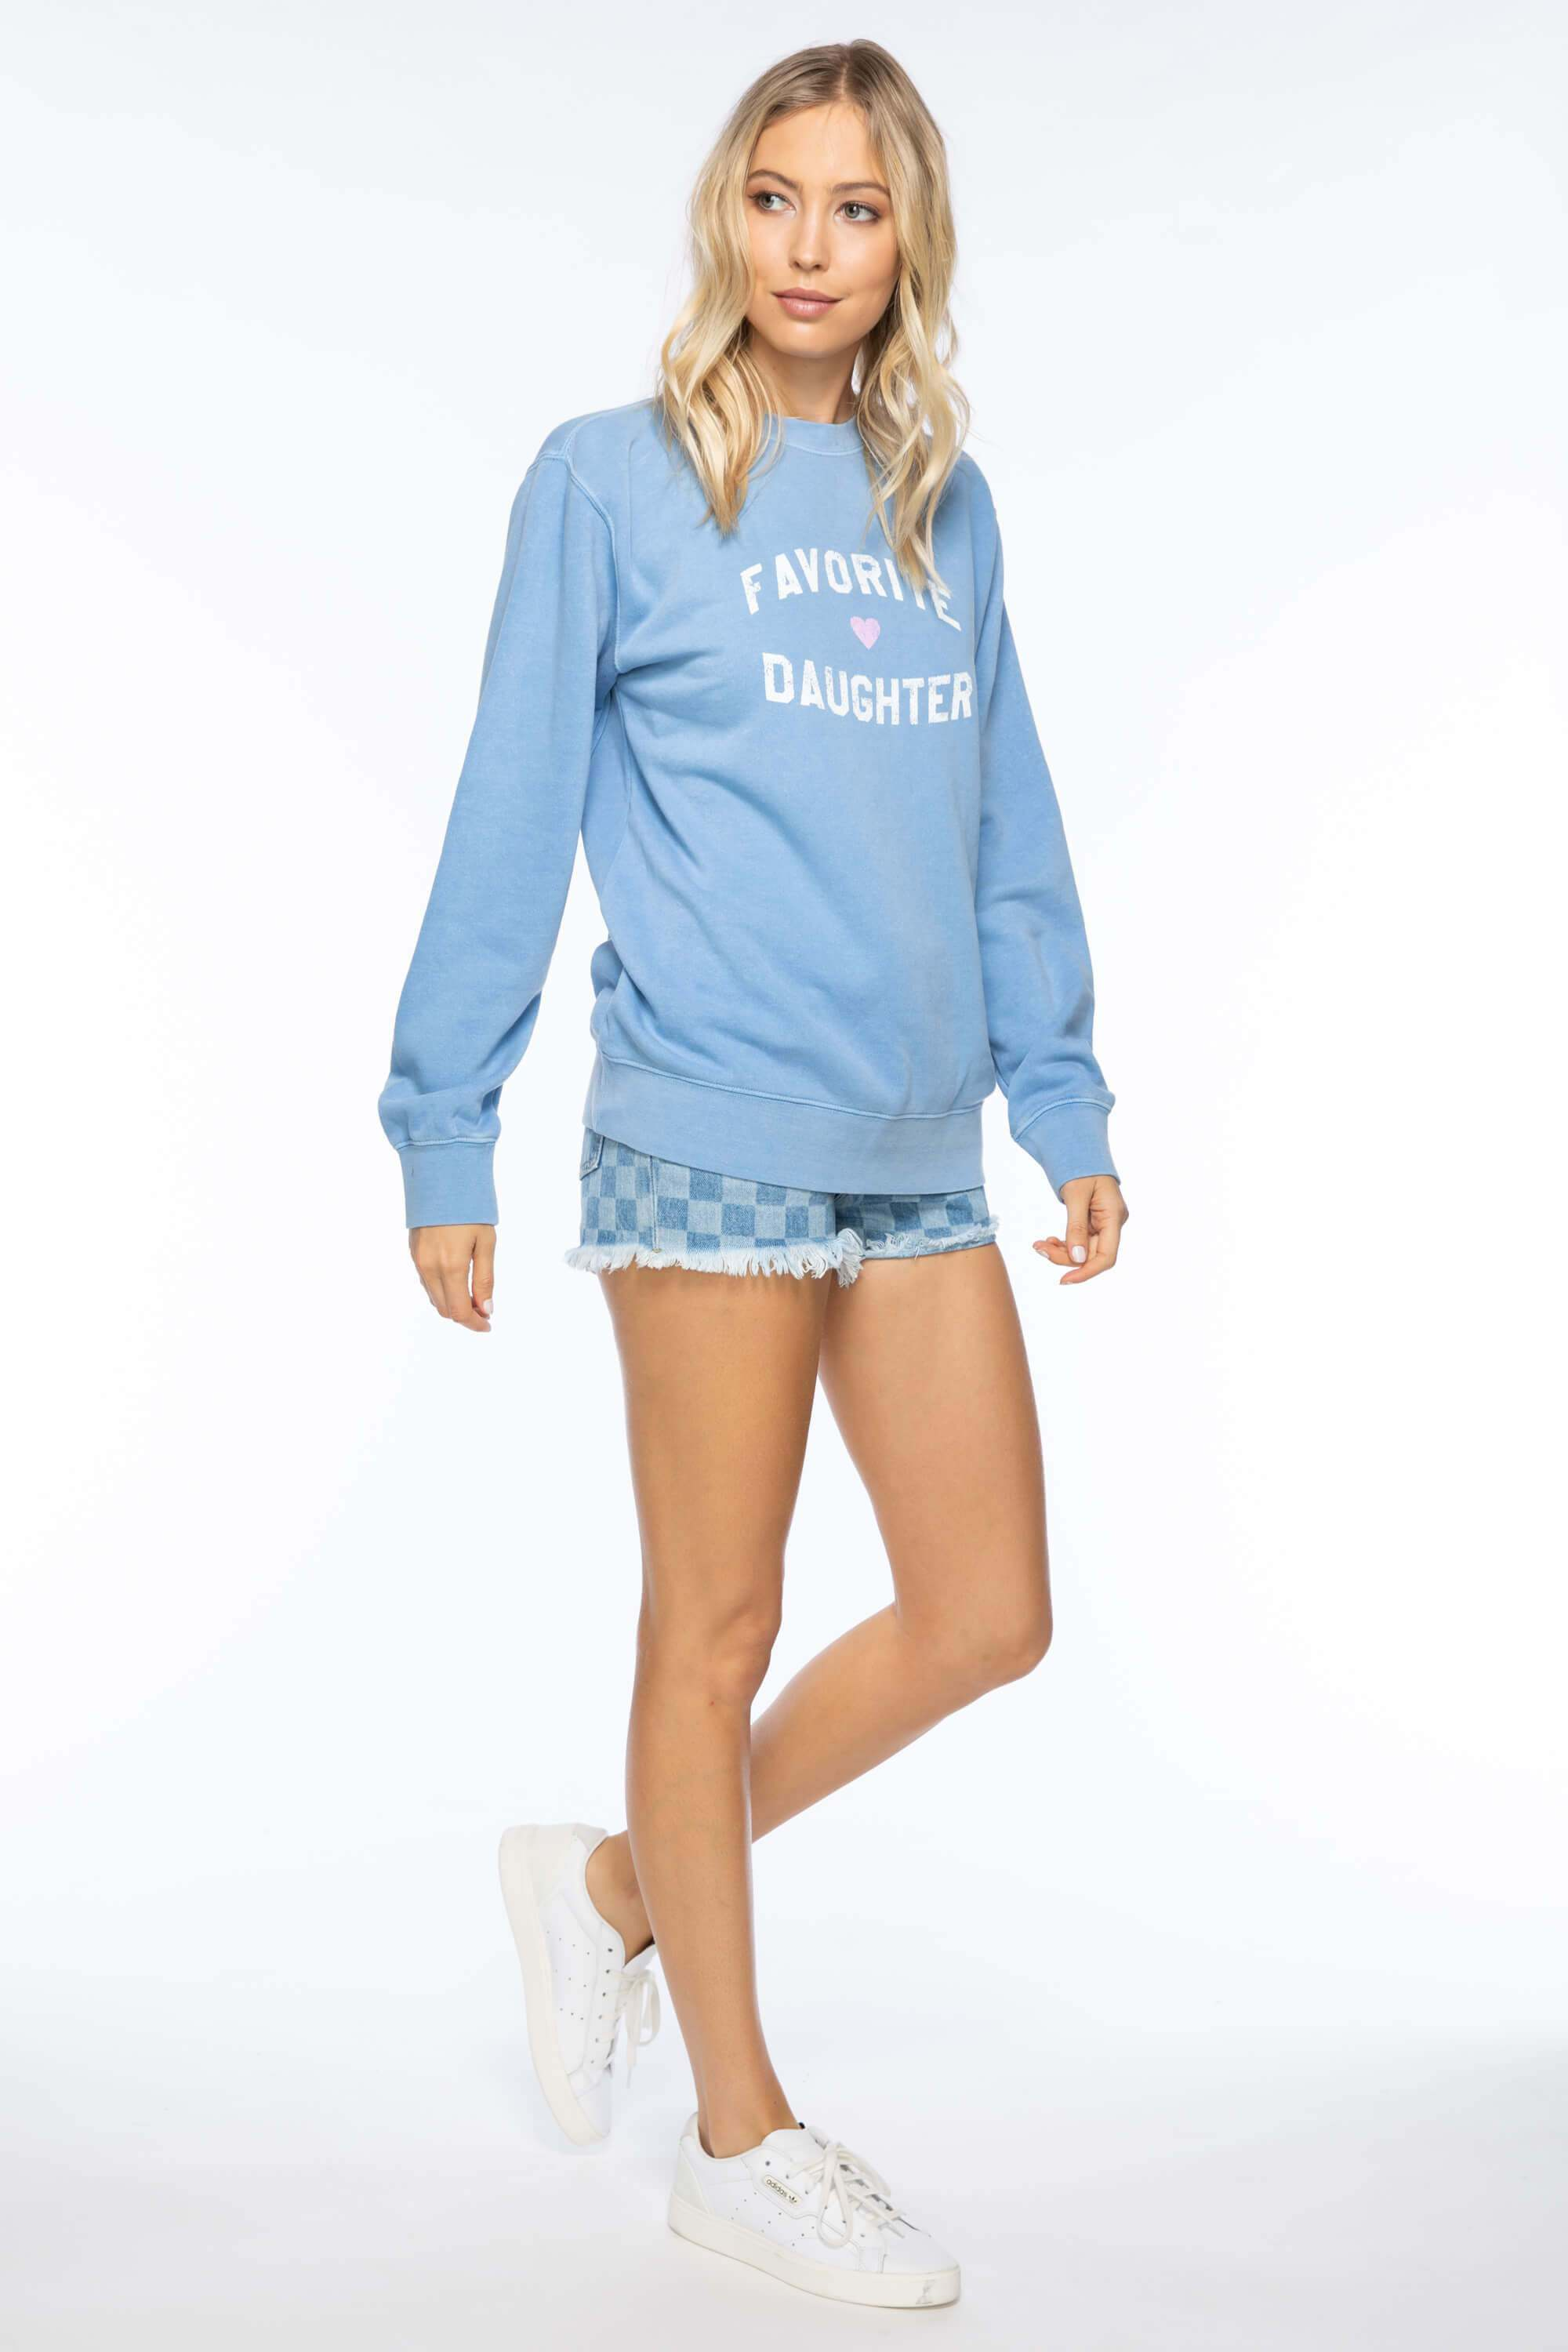 FAVORITE DAUGHTER WILLOW SWEATSHIRT - LIGHT BLUE